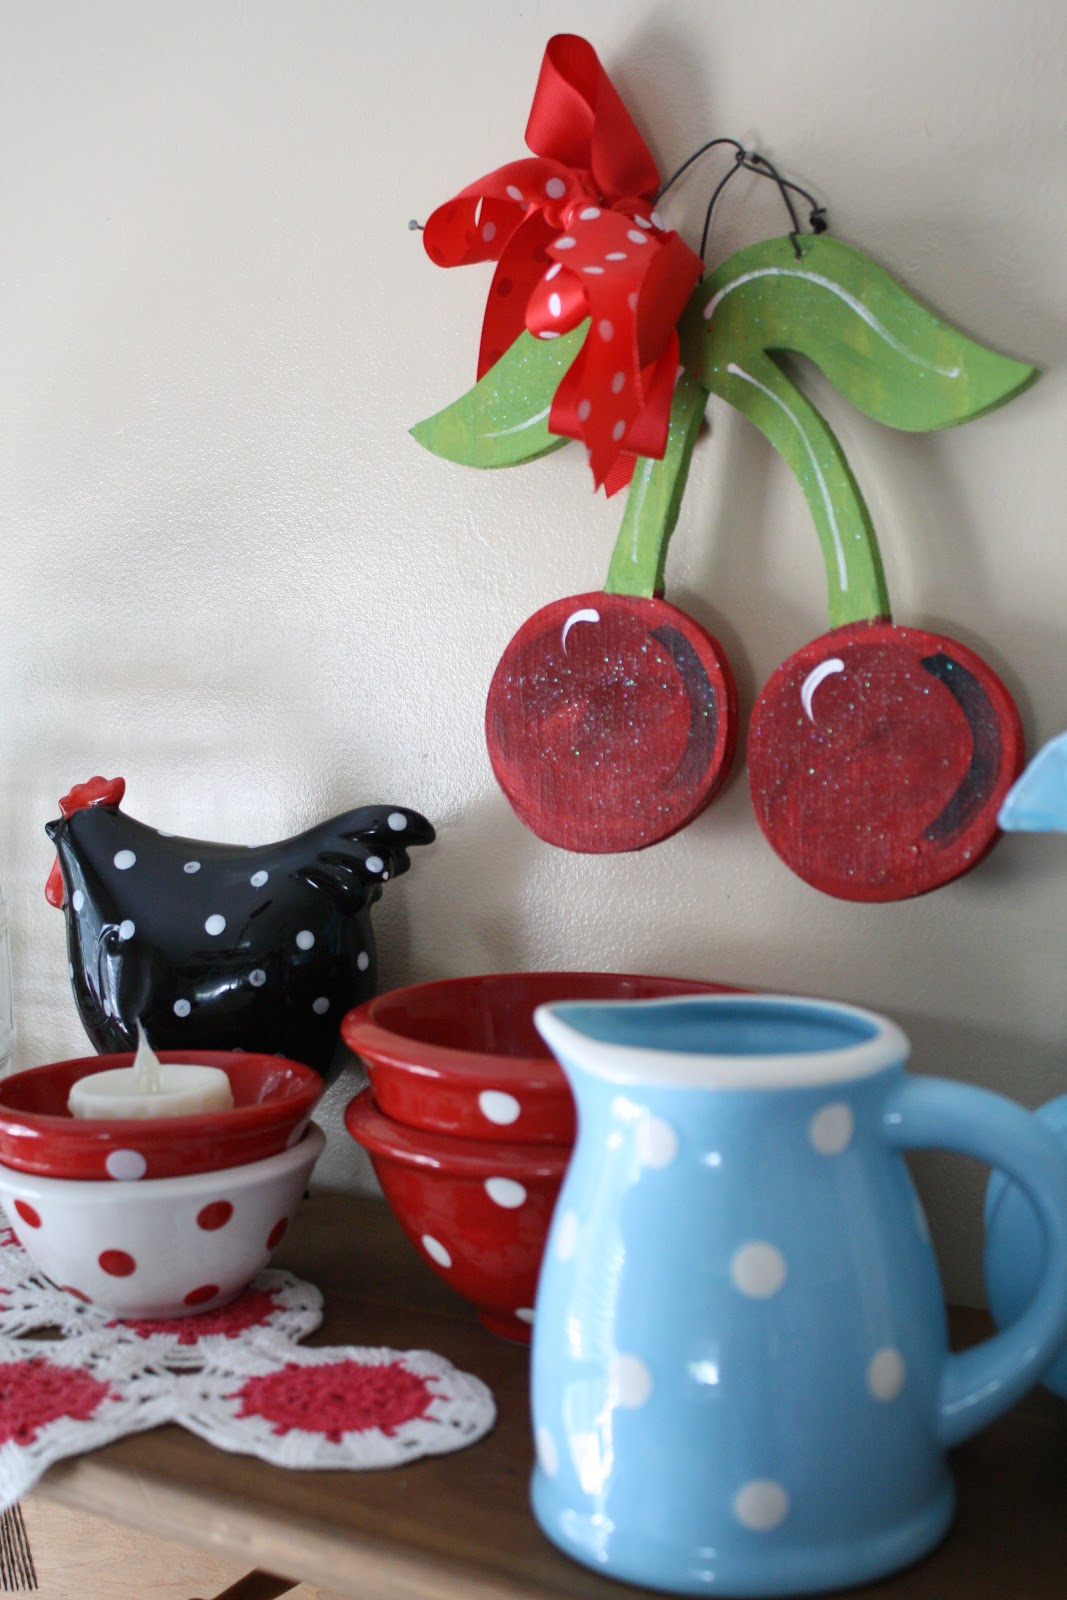 Some Cute Polka Dot Dishes For Christmas Celebration